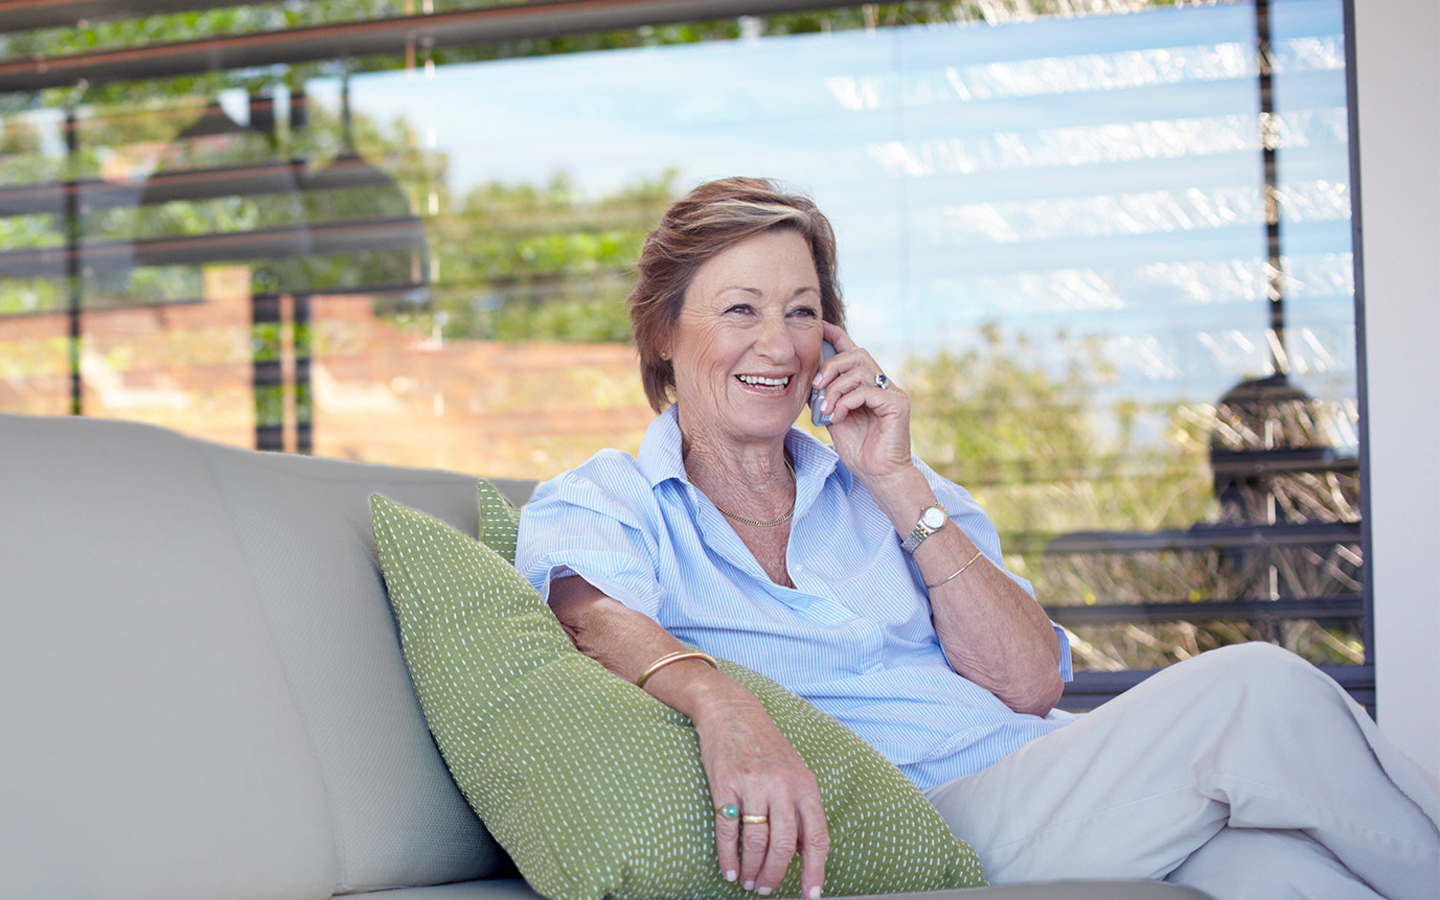 An elderly woman chats on a phone as she sits on a couch